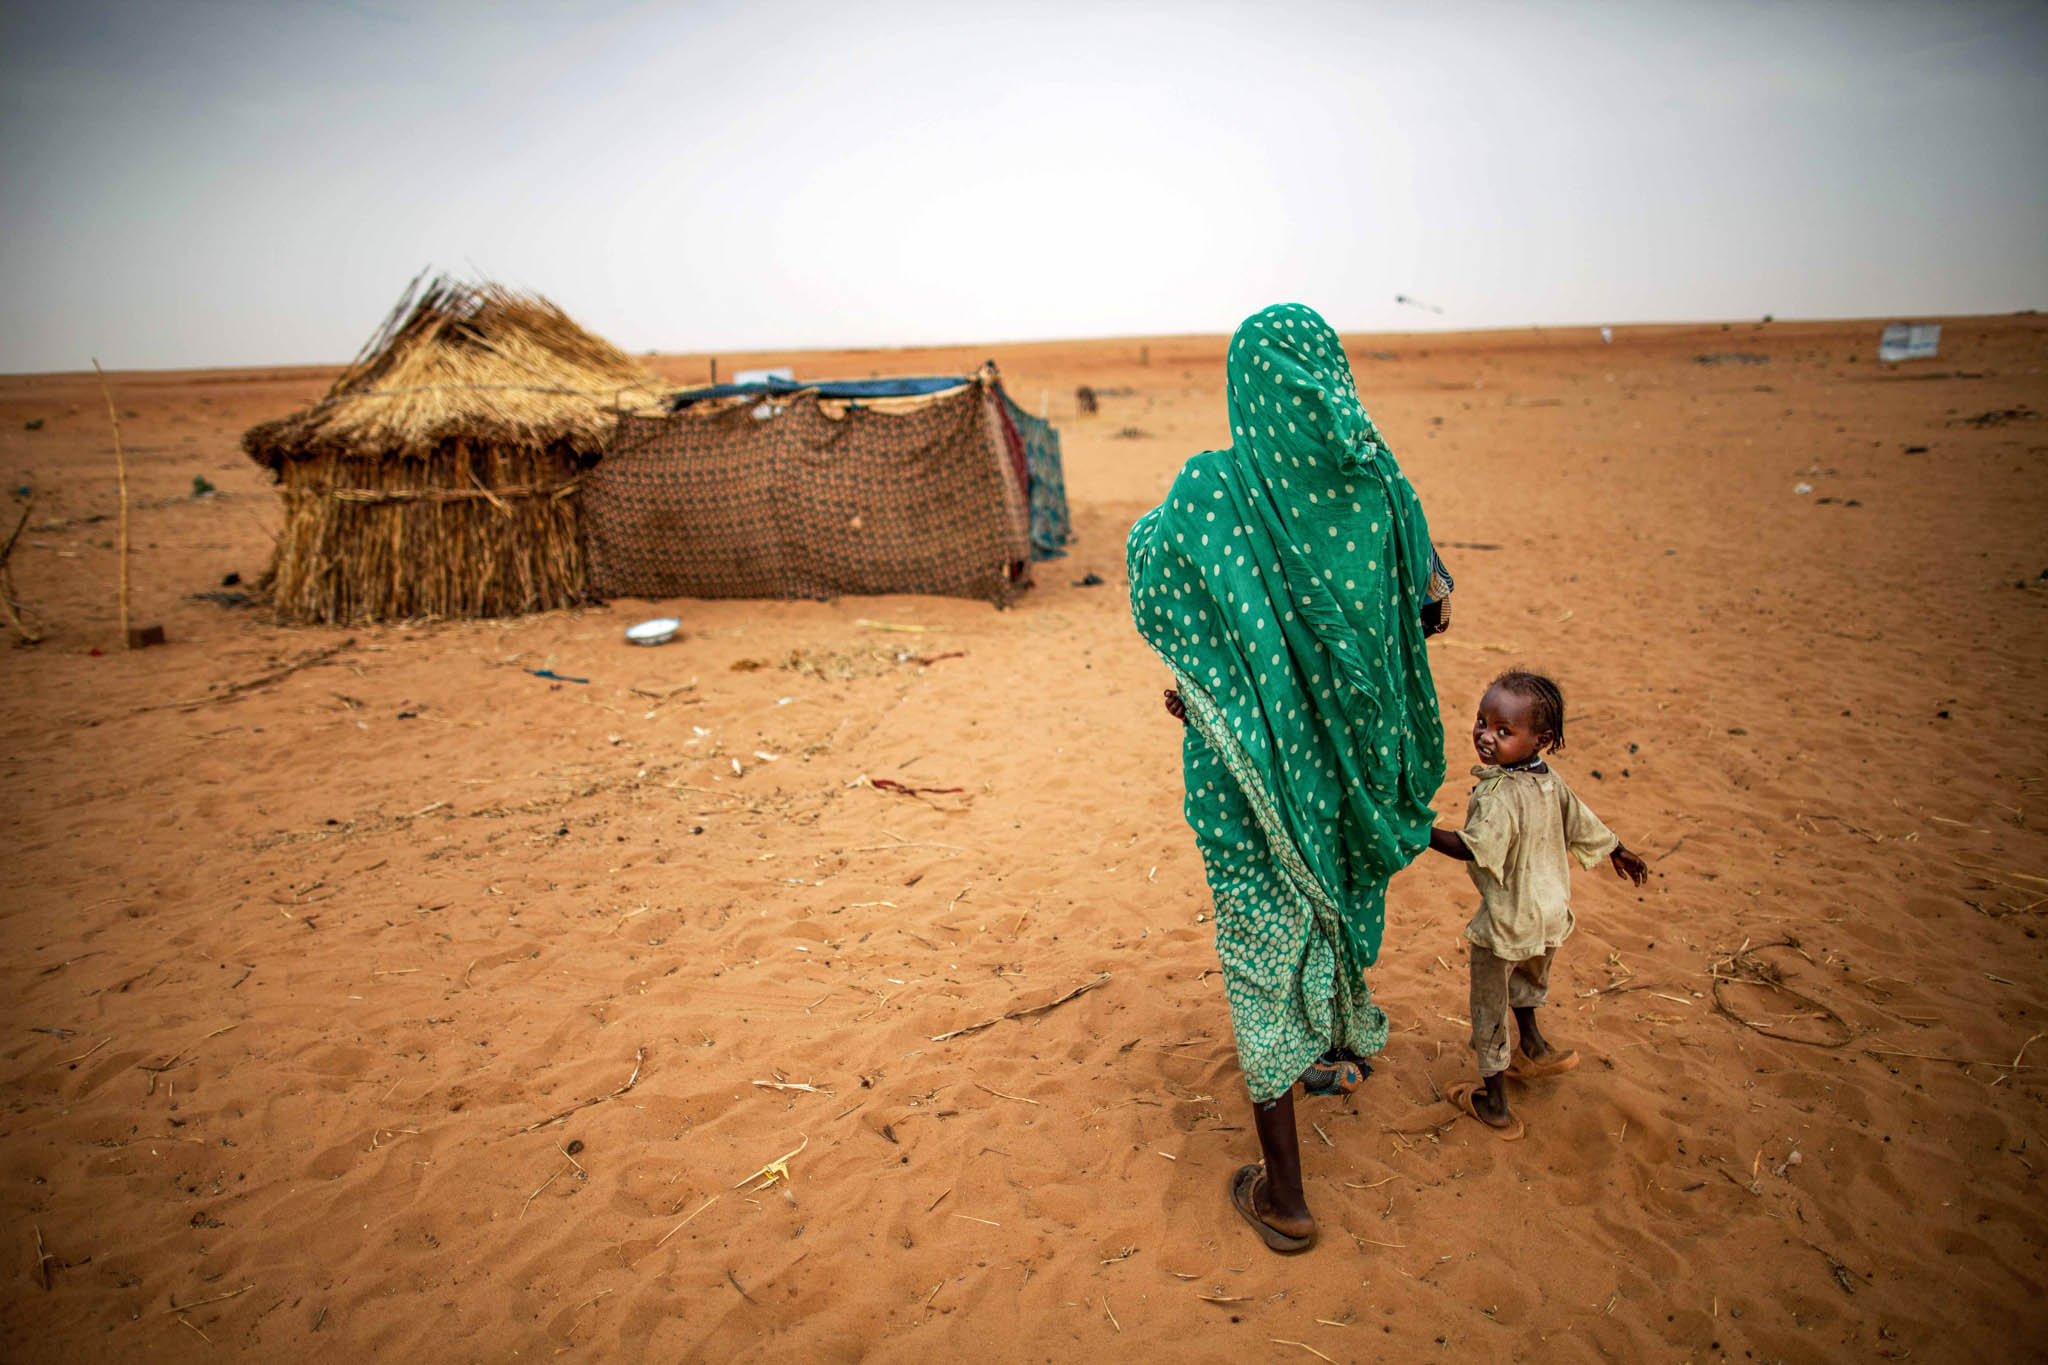 Refugee woman and child walking toward makeshift hut in desert camp (© AP Images)